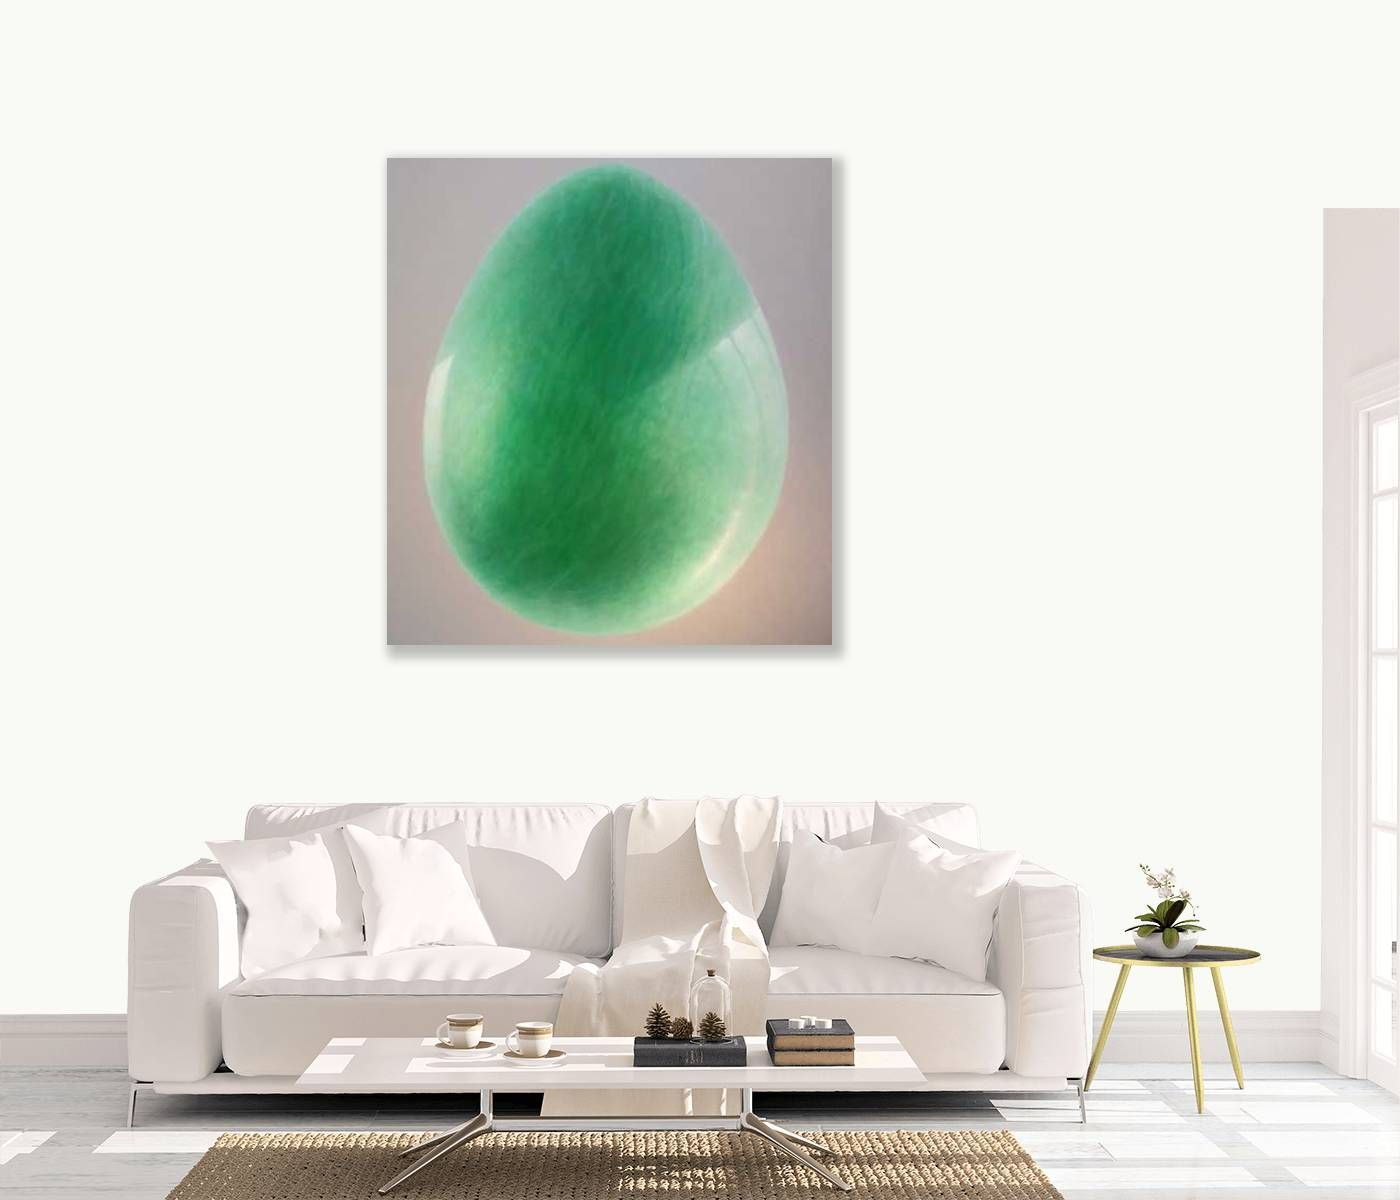 Jade Egg by Lincoln Seligman